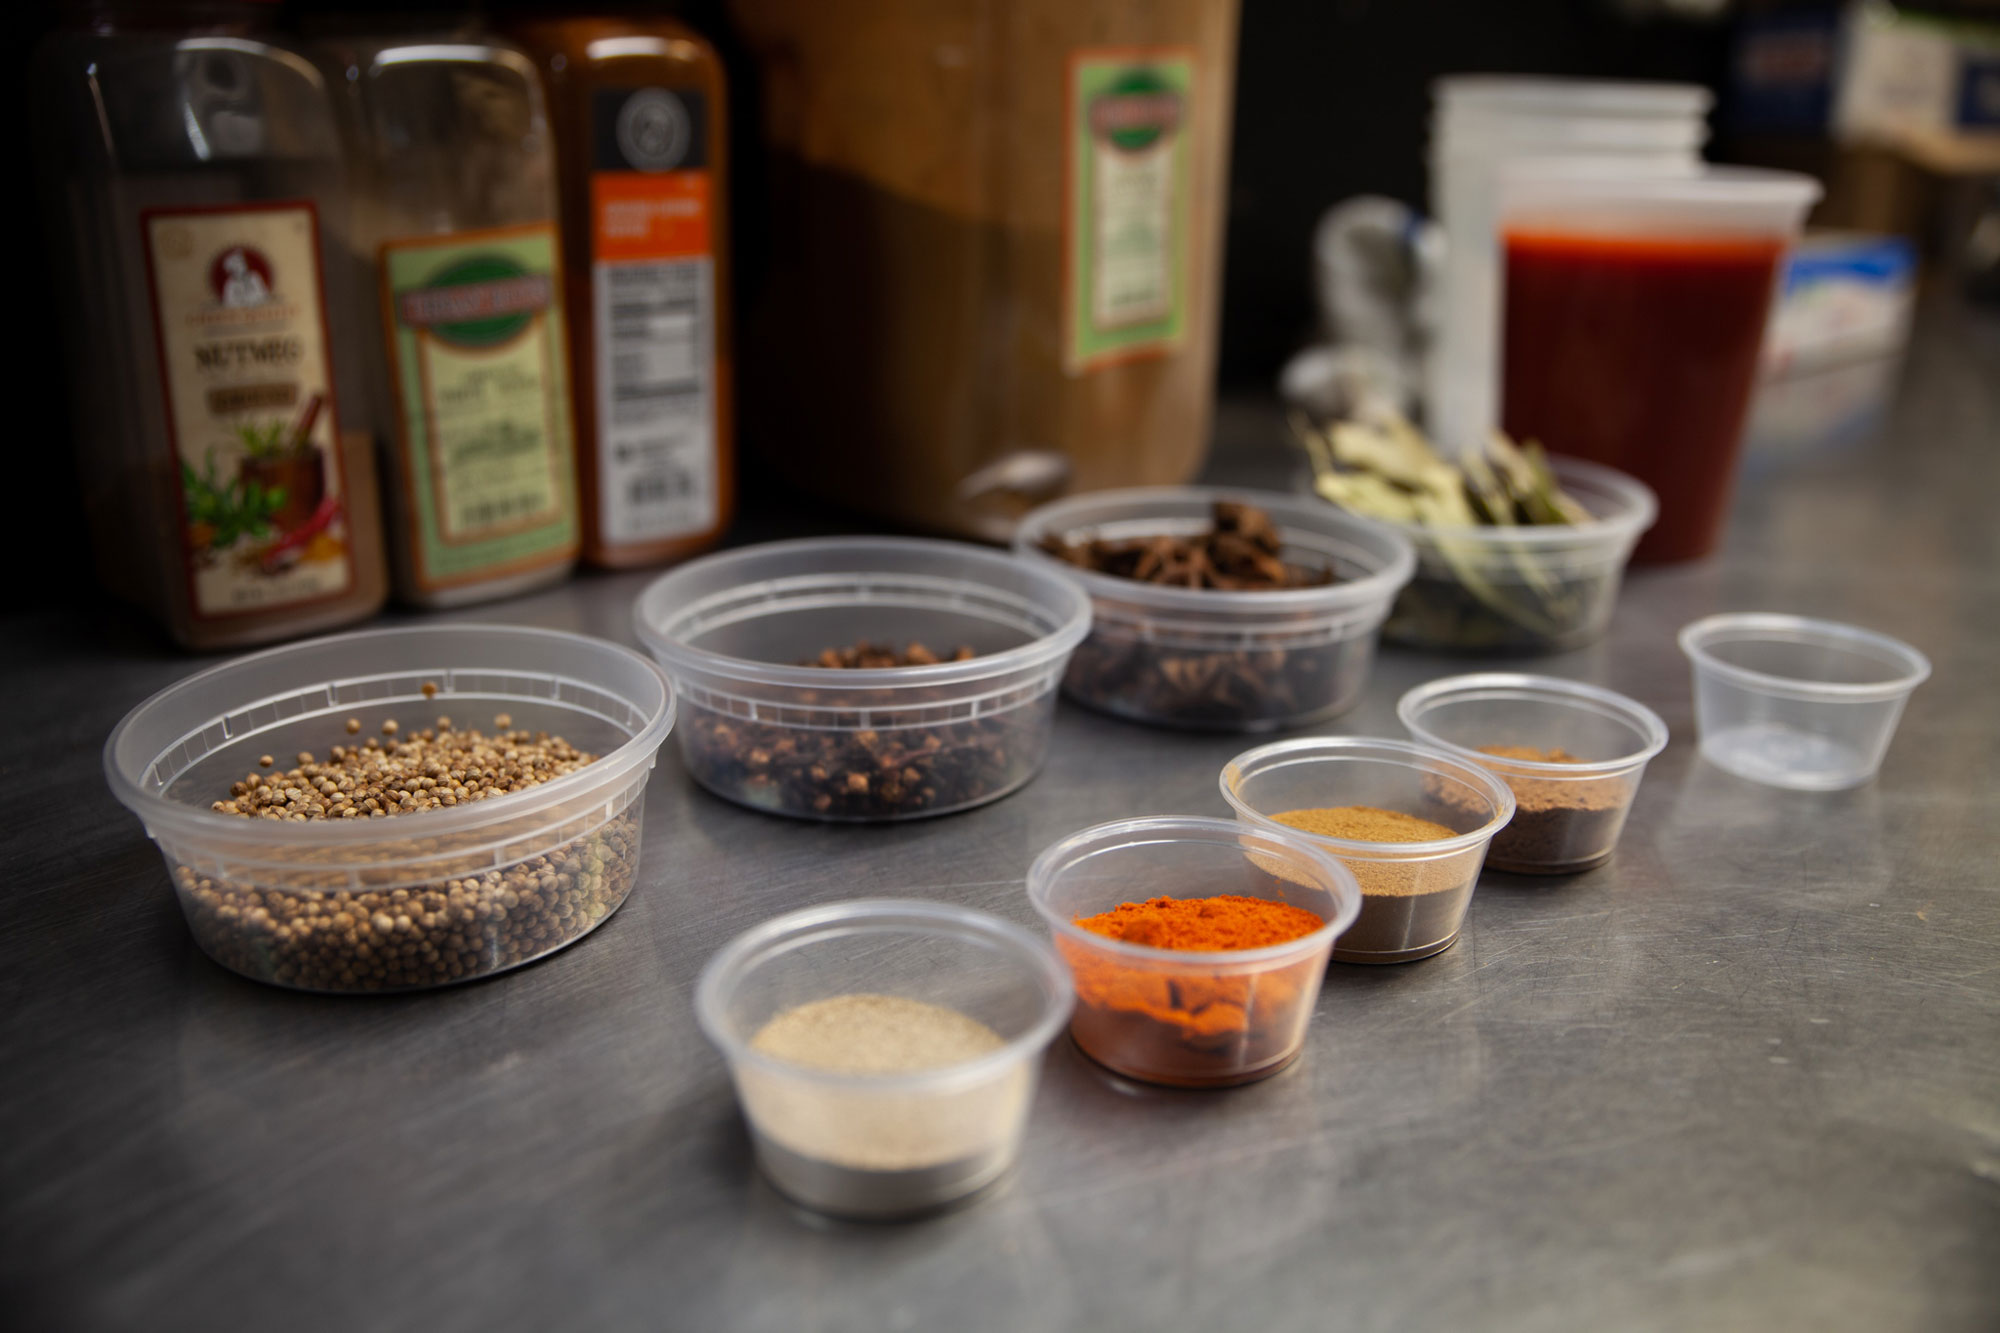 Small containers filled with a variety of spices and seasonings for snapper soup.